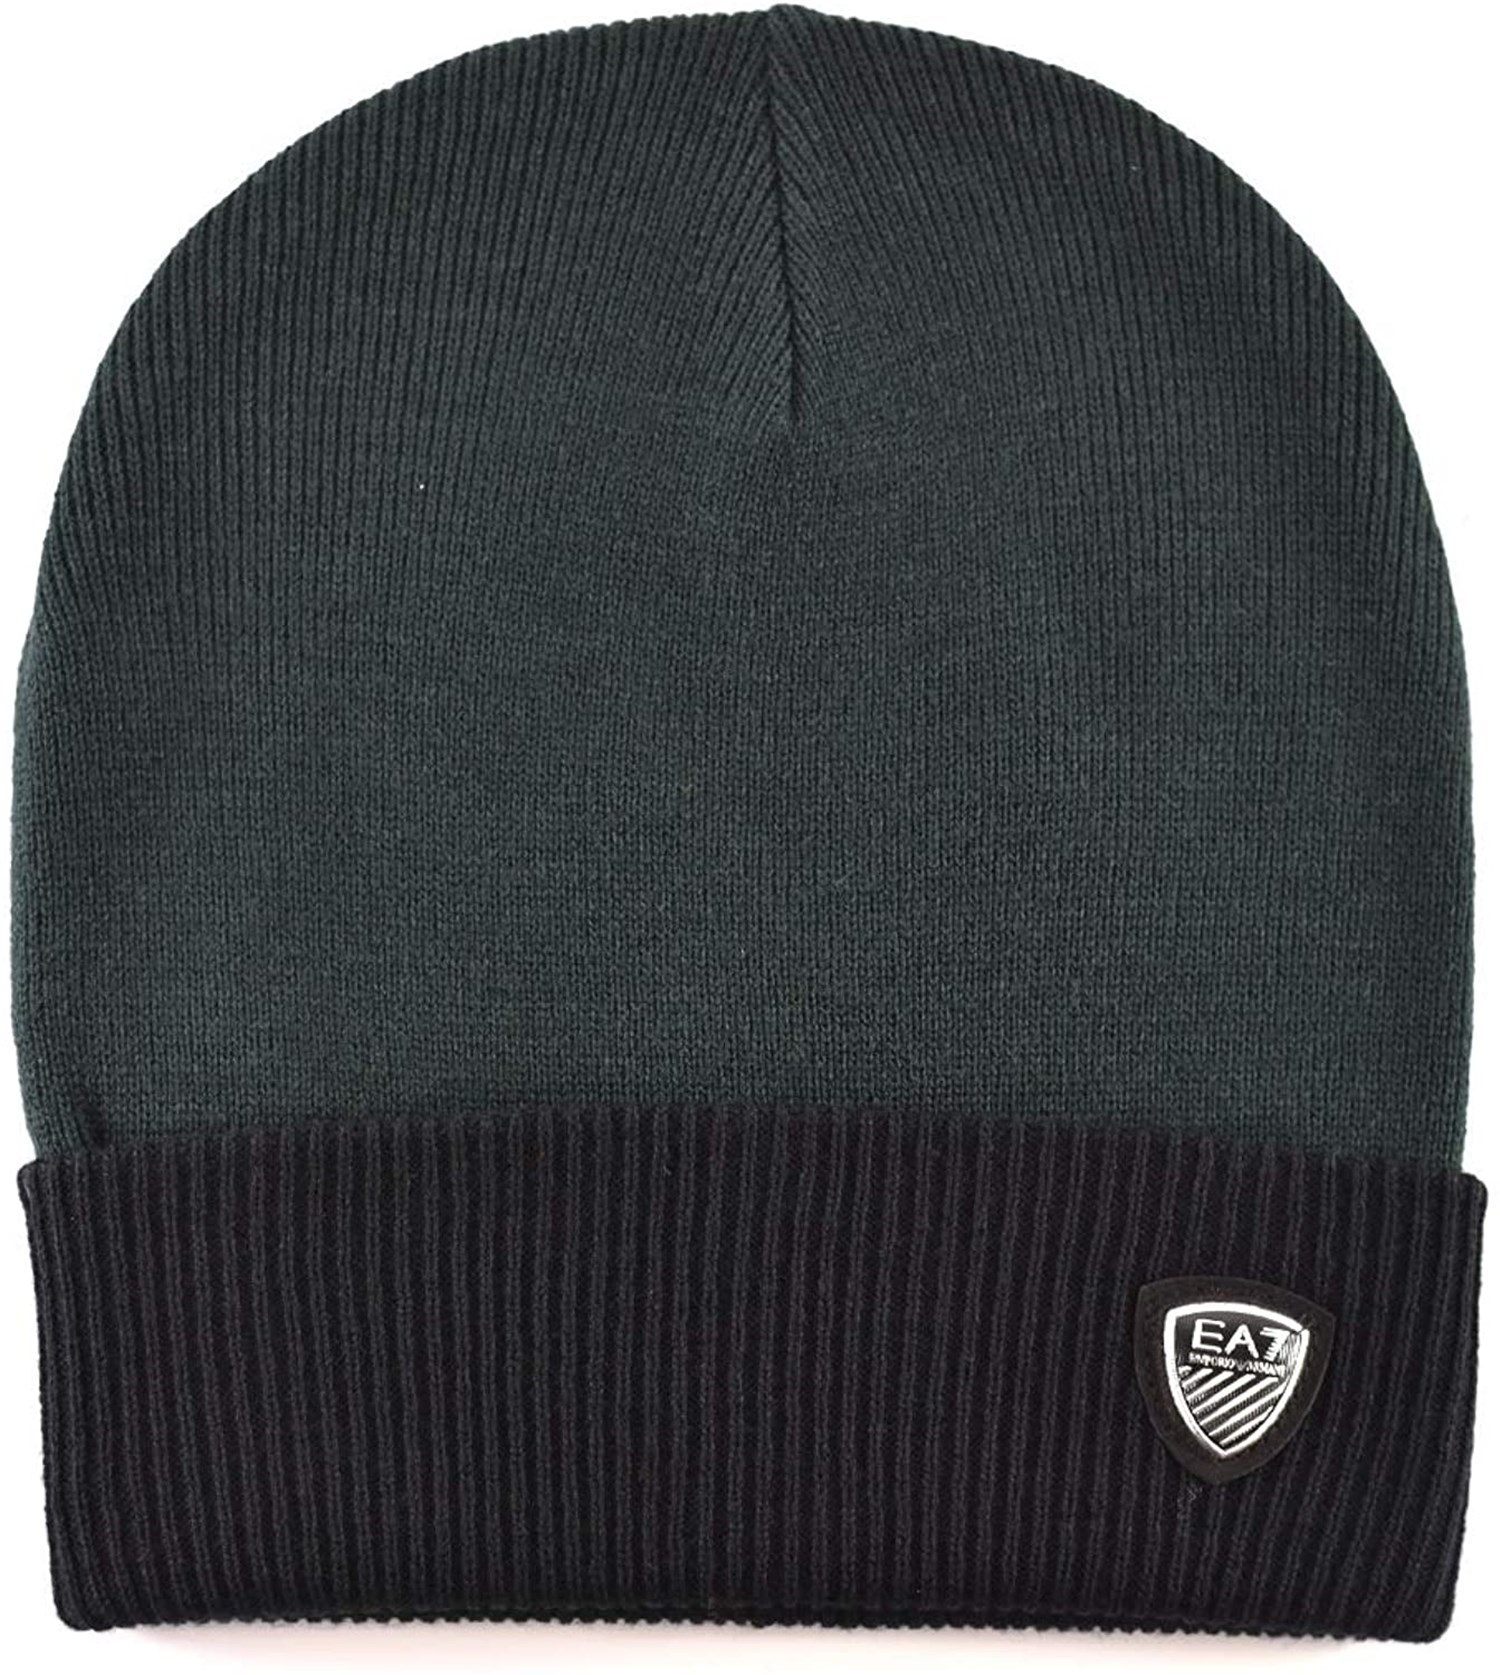 Ea7 Accessories Accessories Beanie BLACK 275896